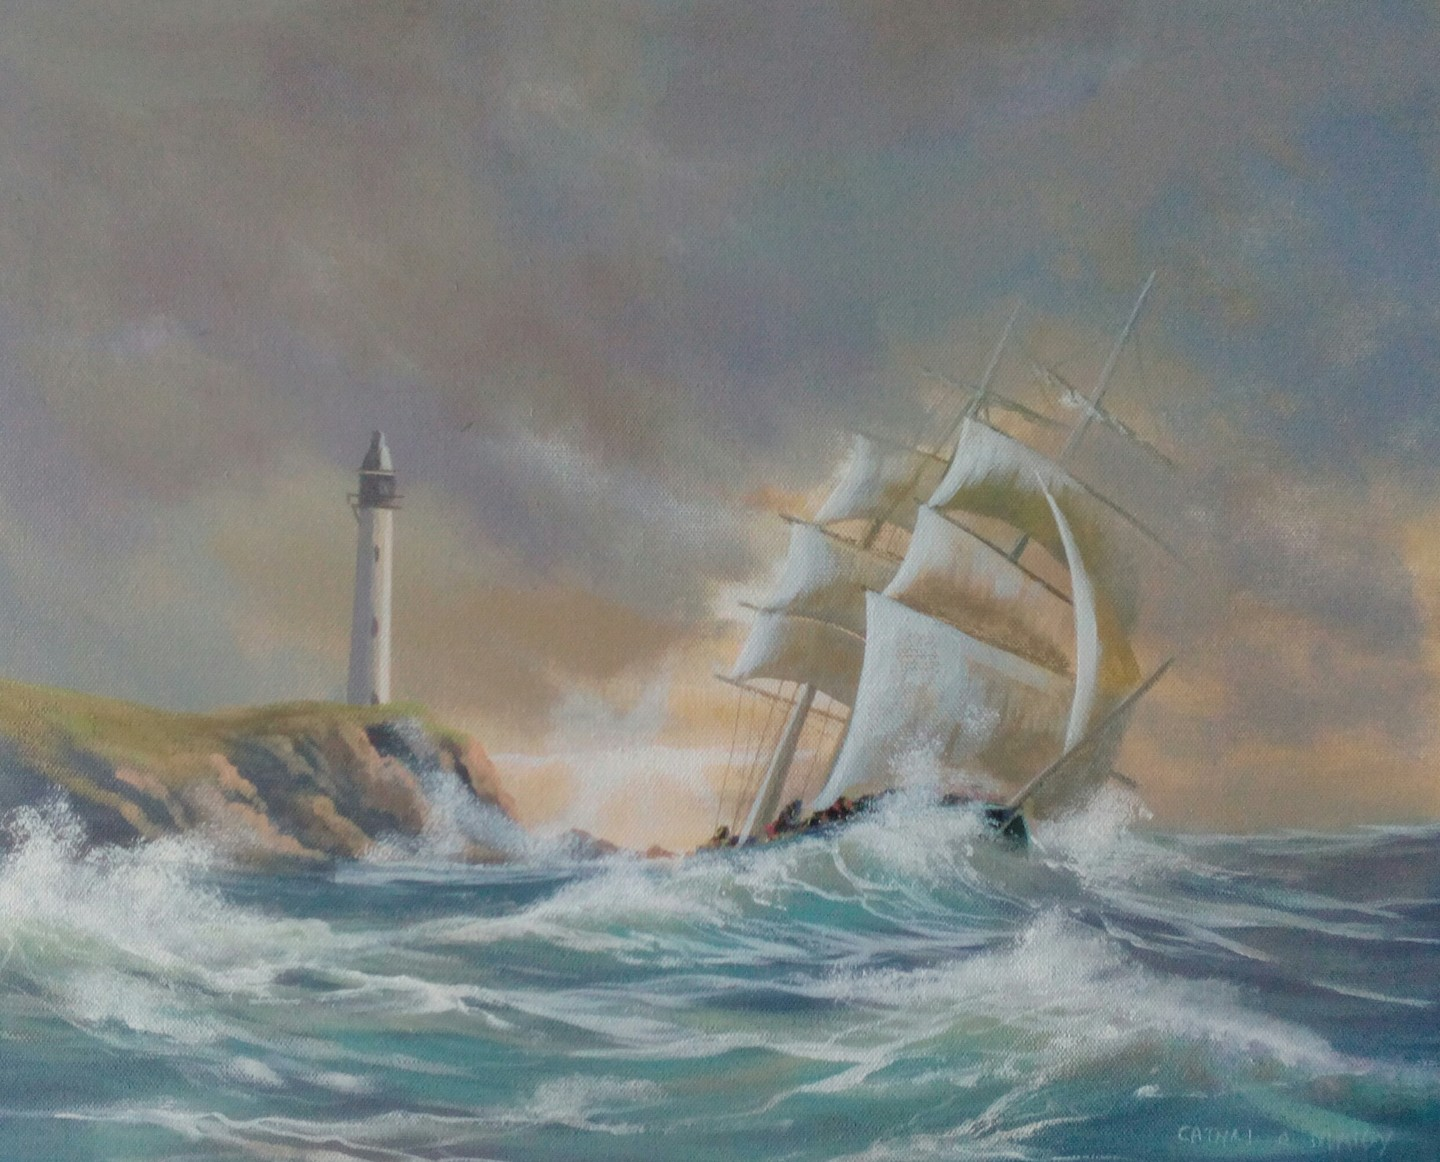 Cathal O Malley - Atlantic ship